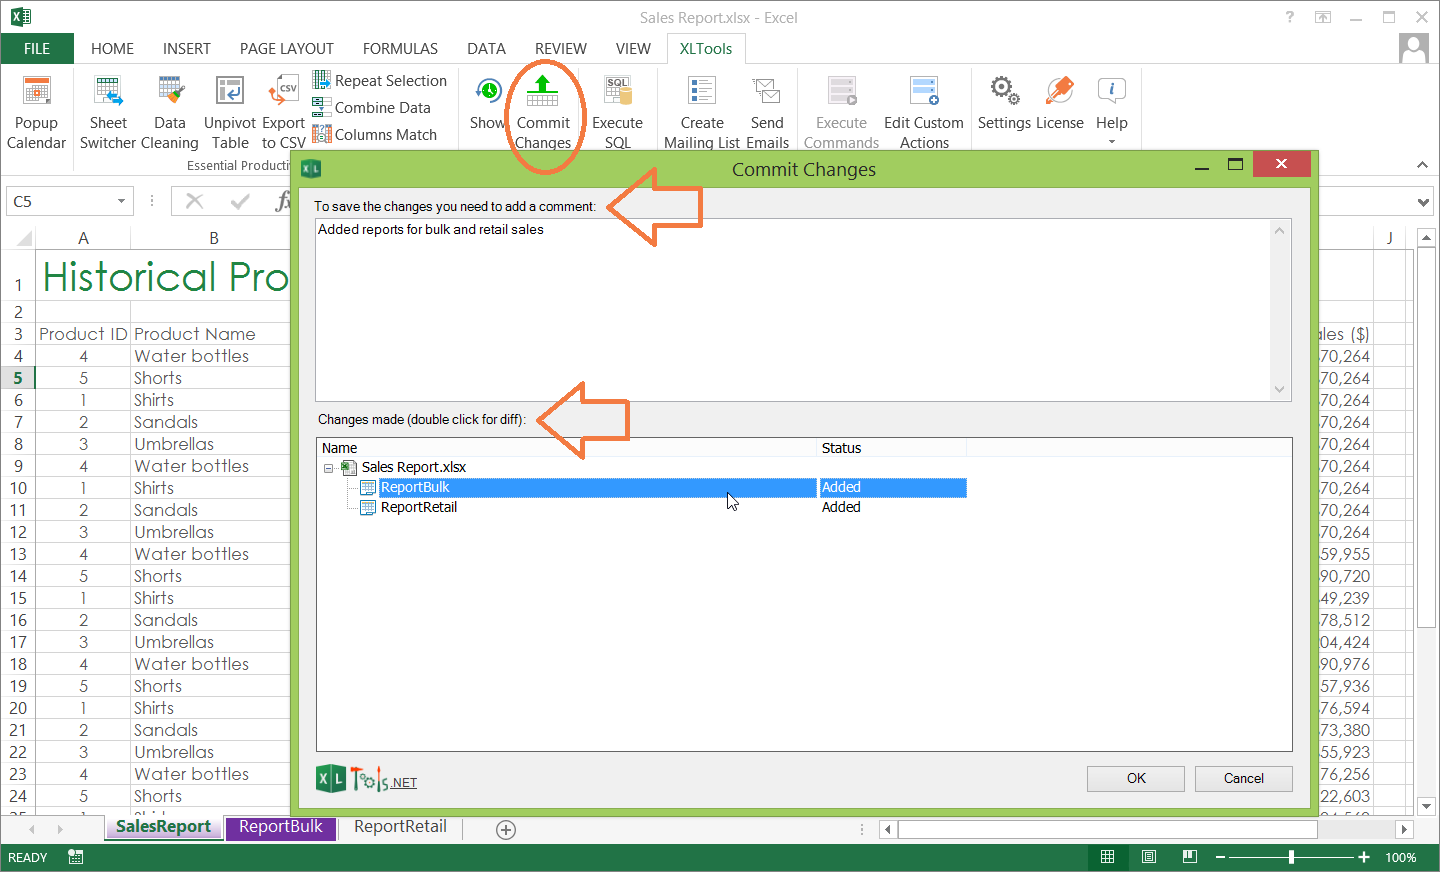 Workbooks how to merge workbooks in excel 2010 : How To Compare Spreadsheets in Excel | LAOBINGKAISUO.COM